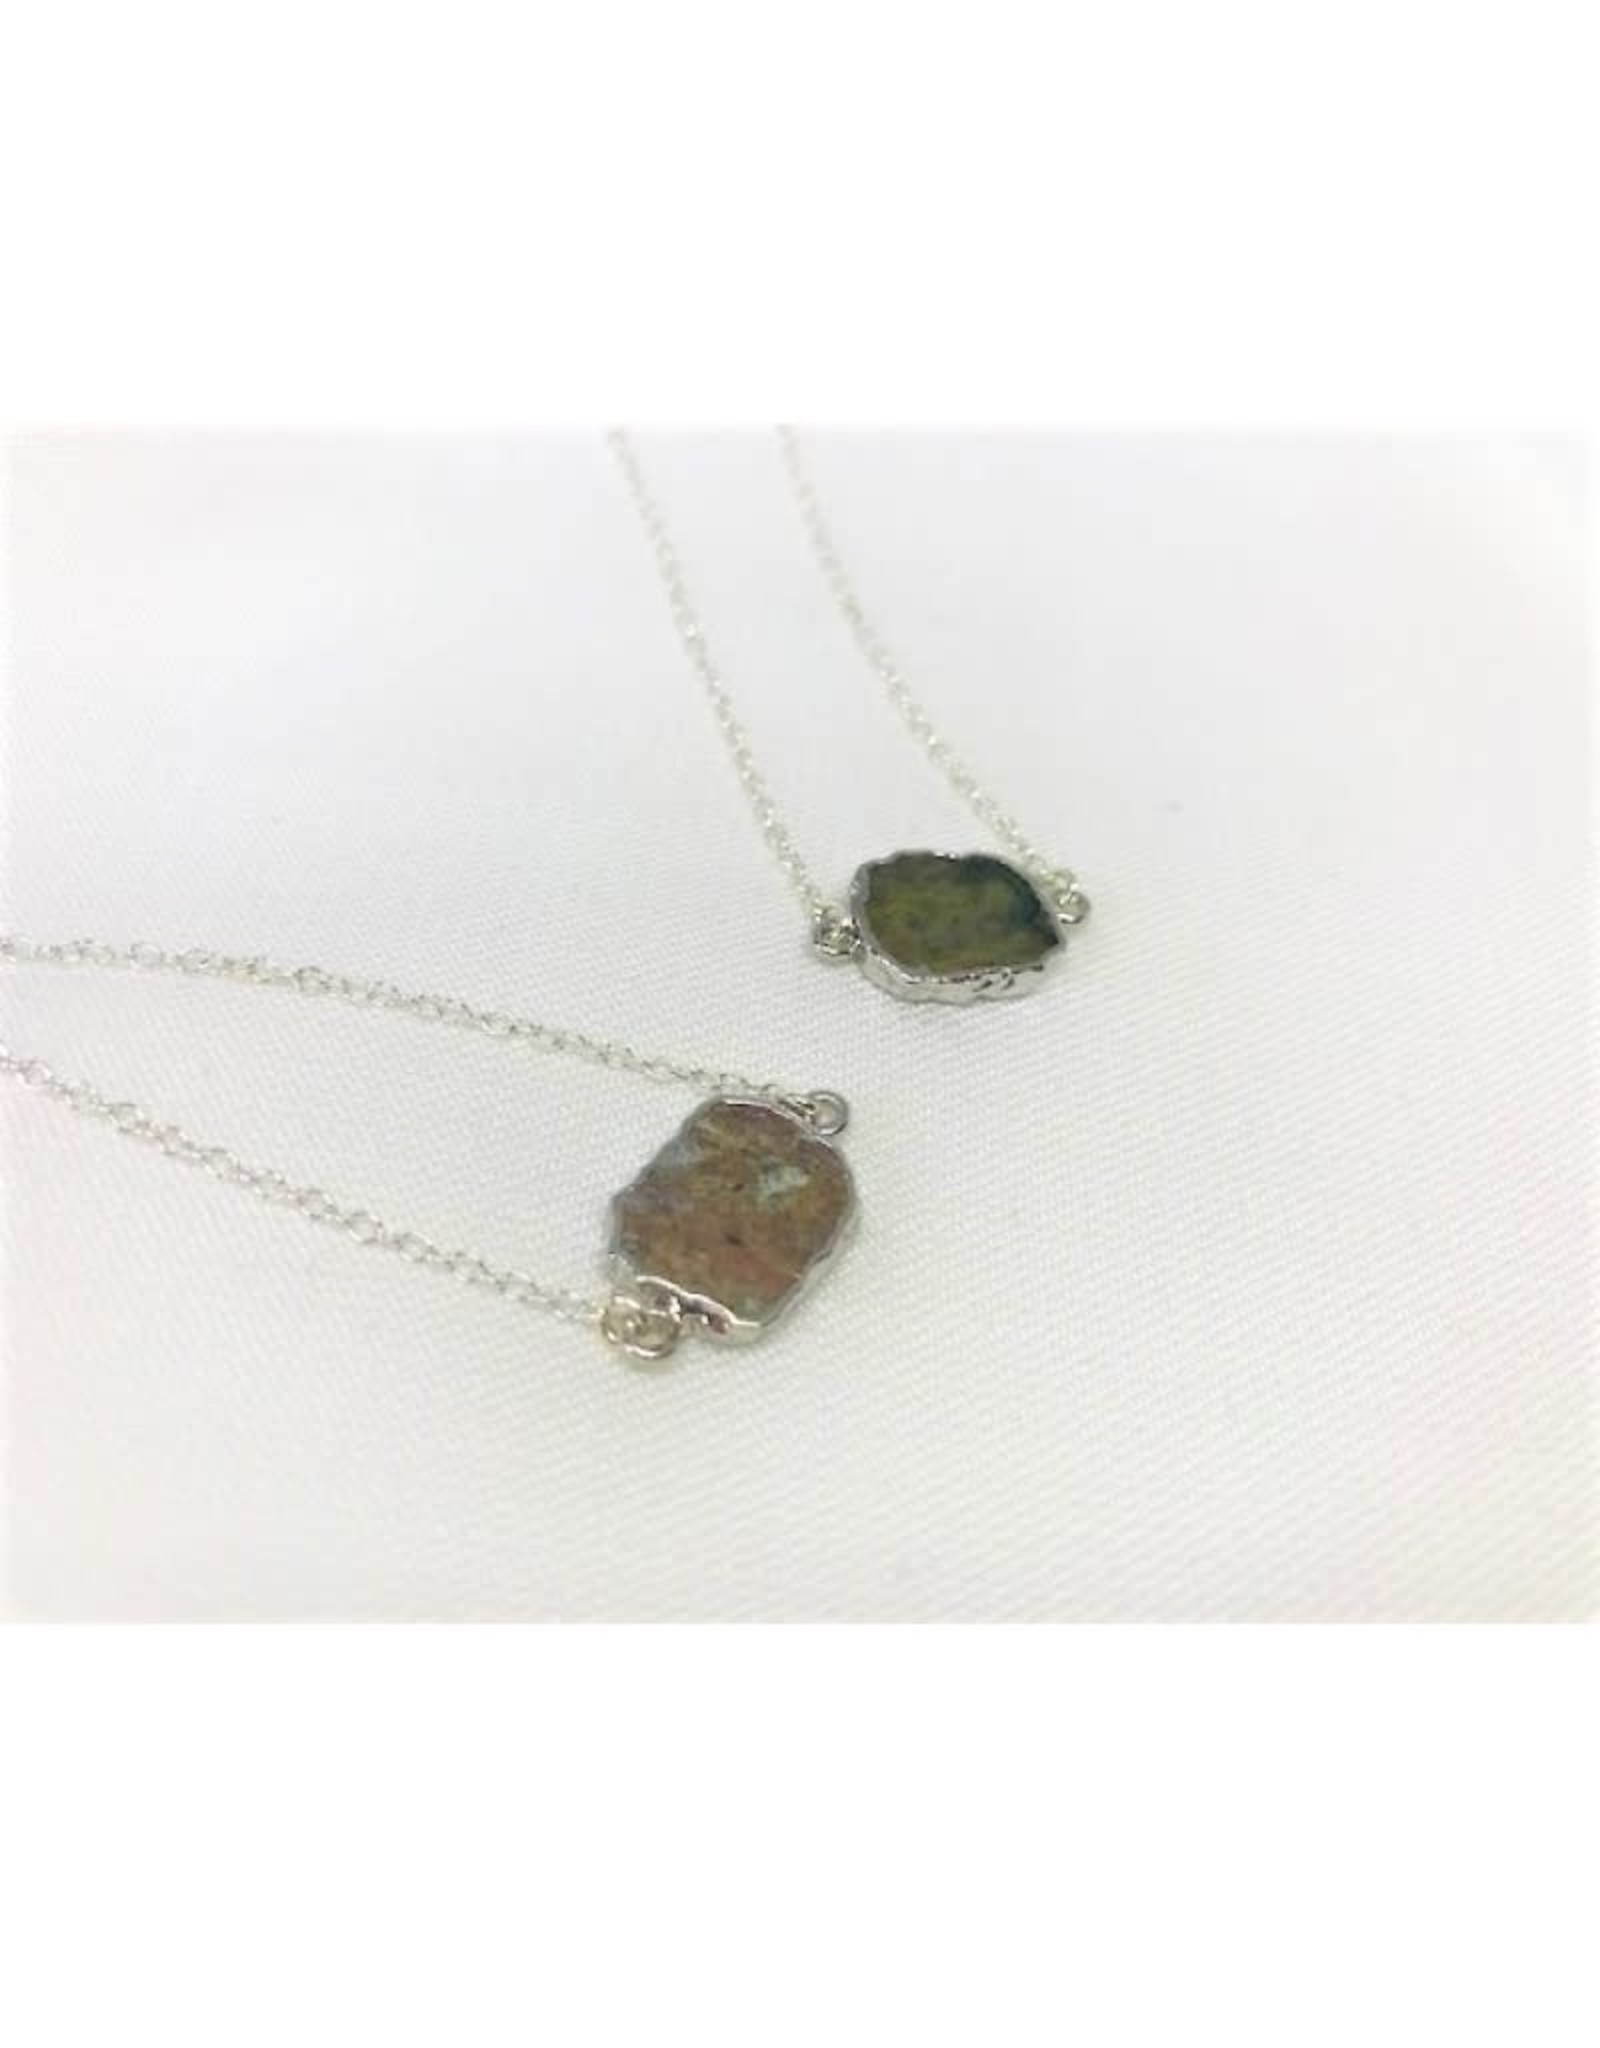 Gemstone Slice Necklace - Ocean Jasper